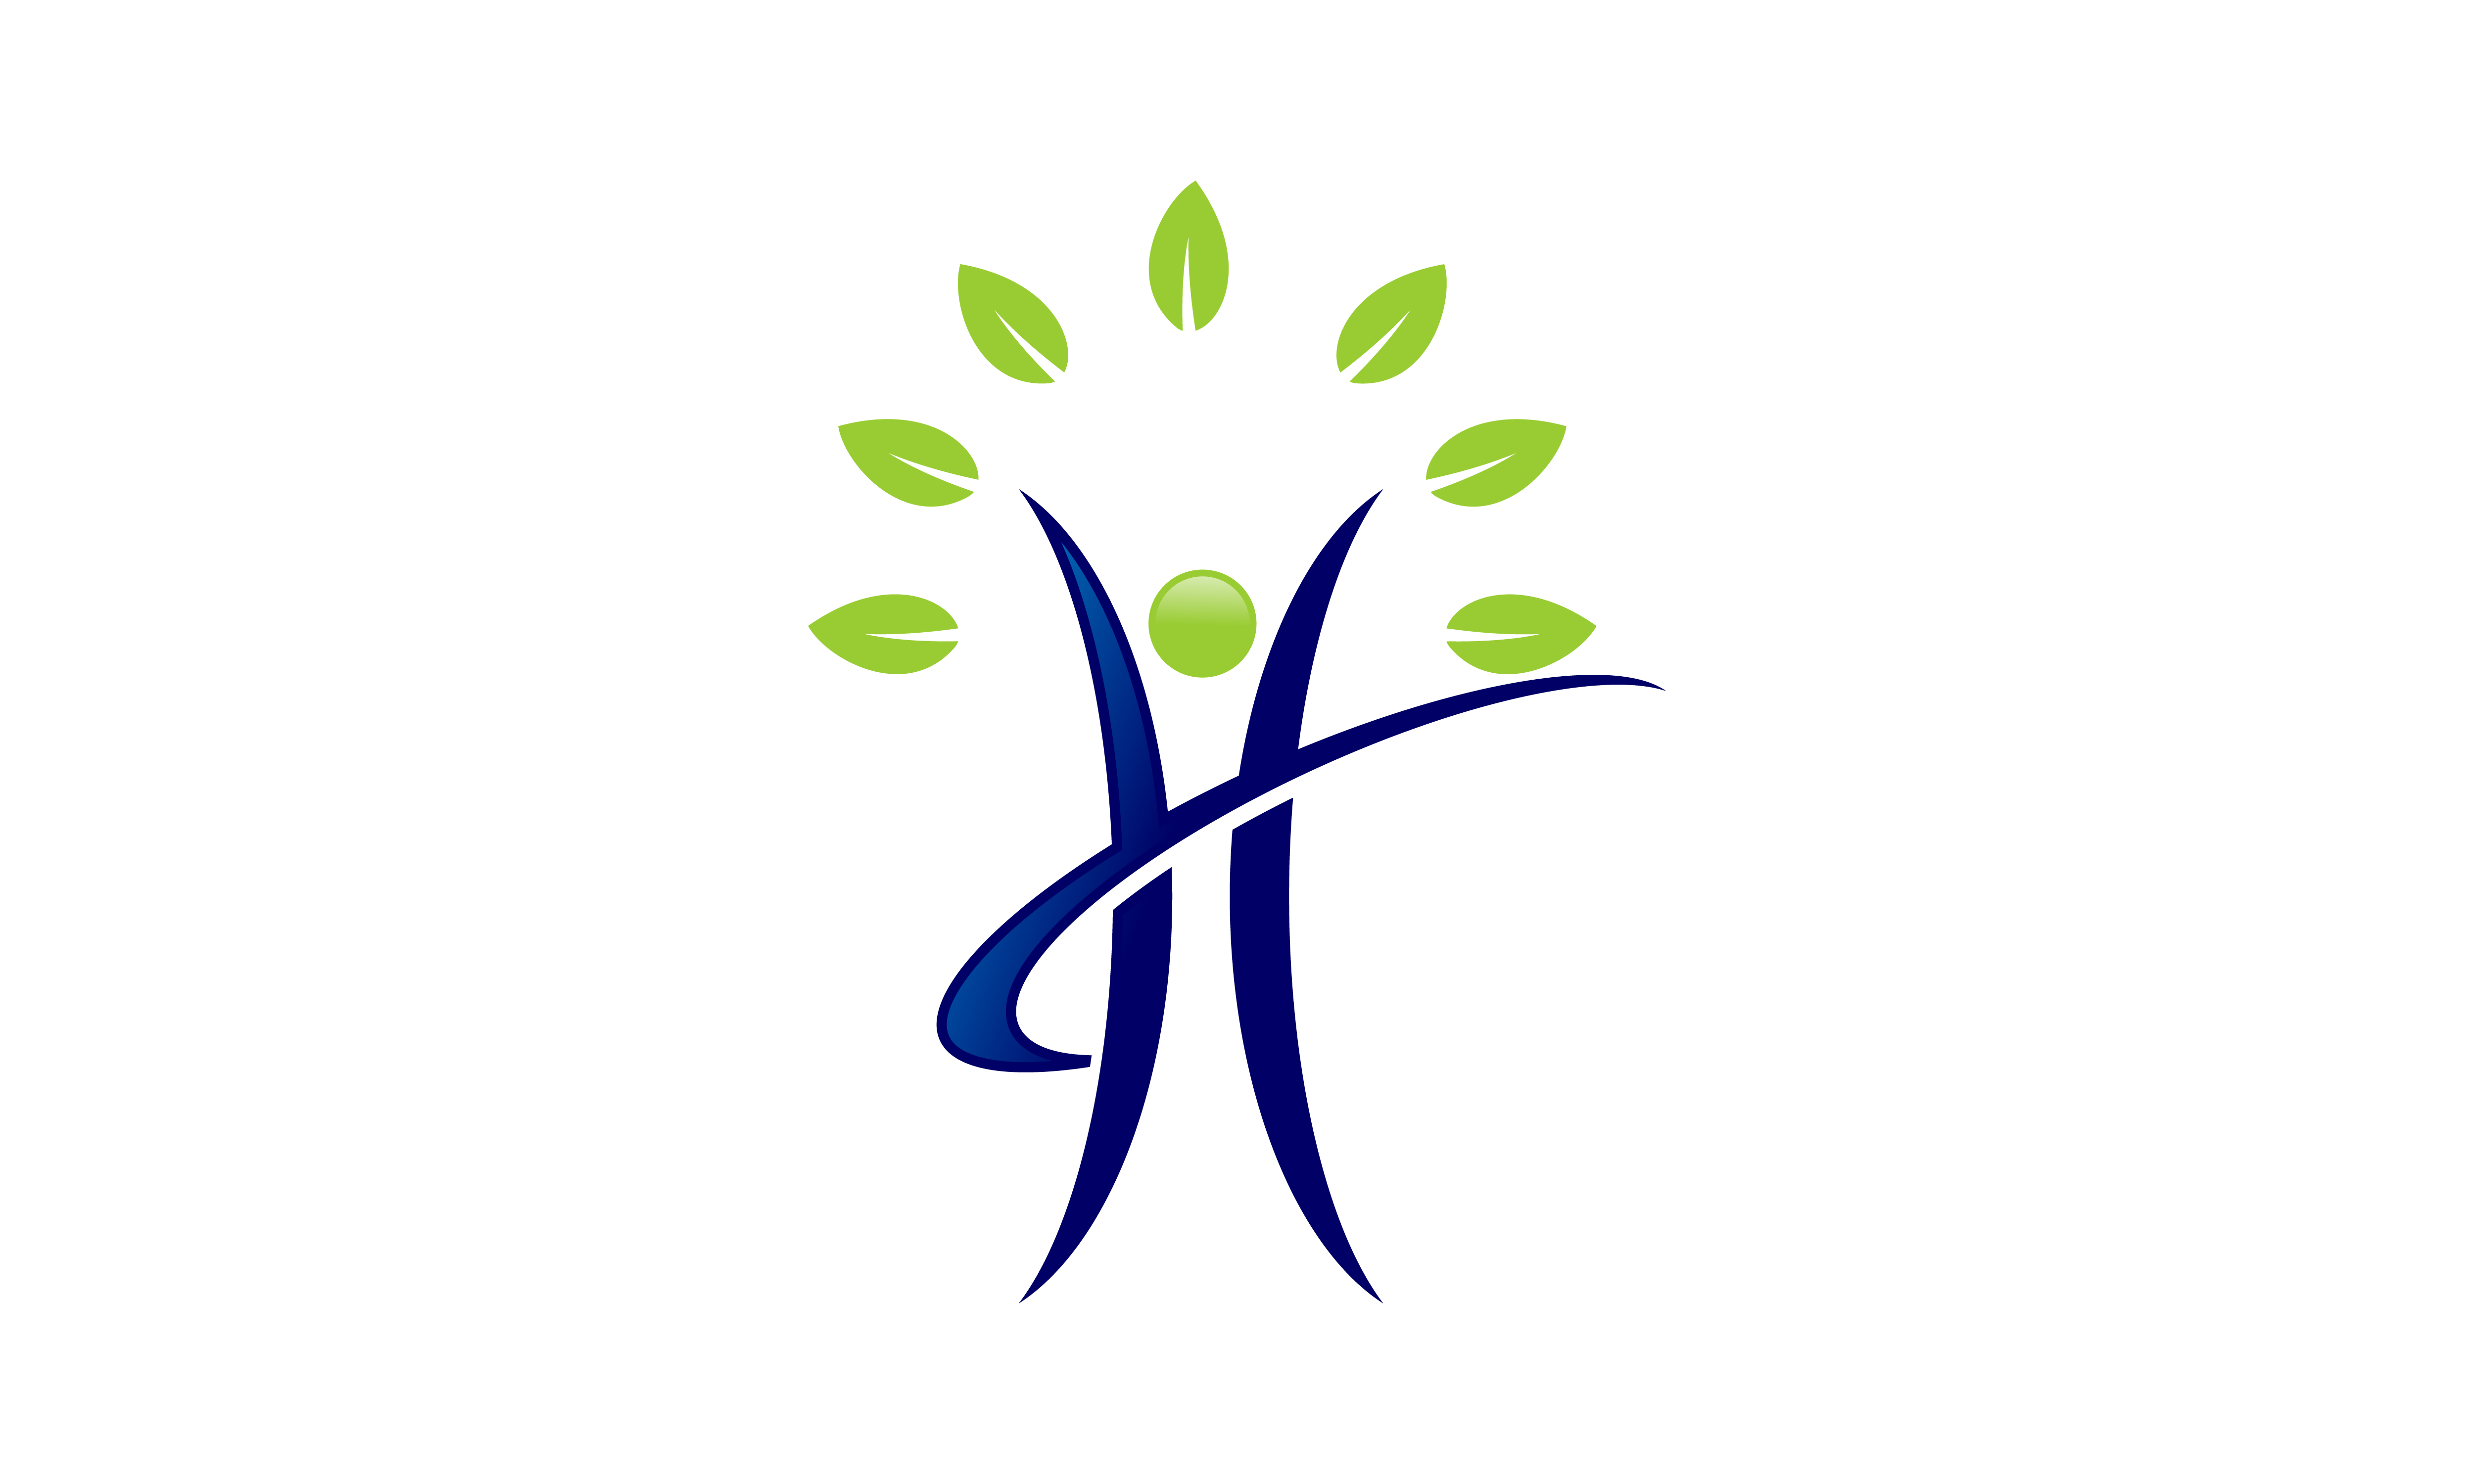 Download Free People Tree Leaf Ecology Nature Logo Wellness Healthy Life for Cricut Explore, Silhouette and other cutting machines.